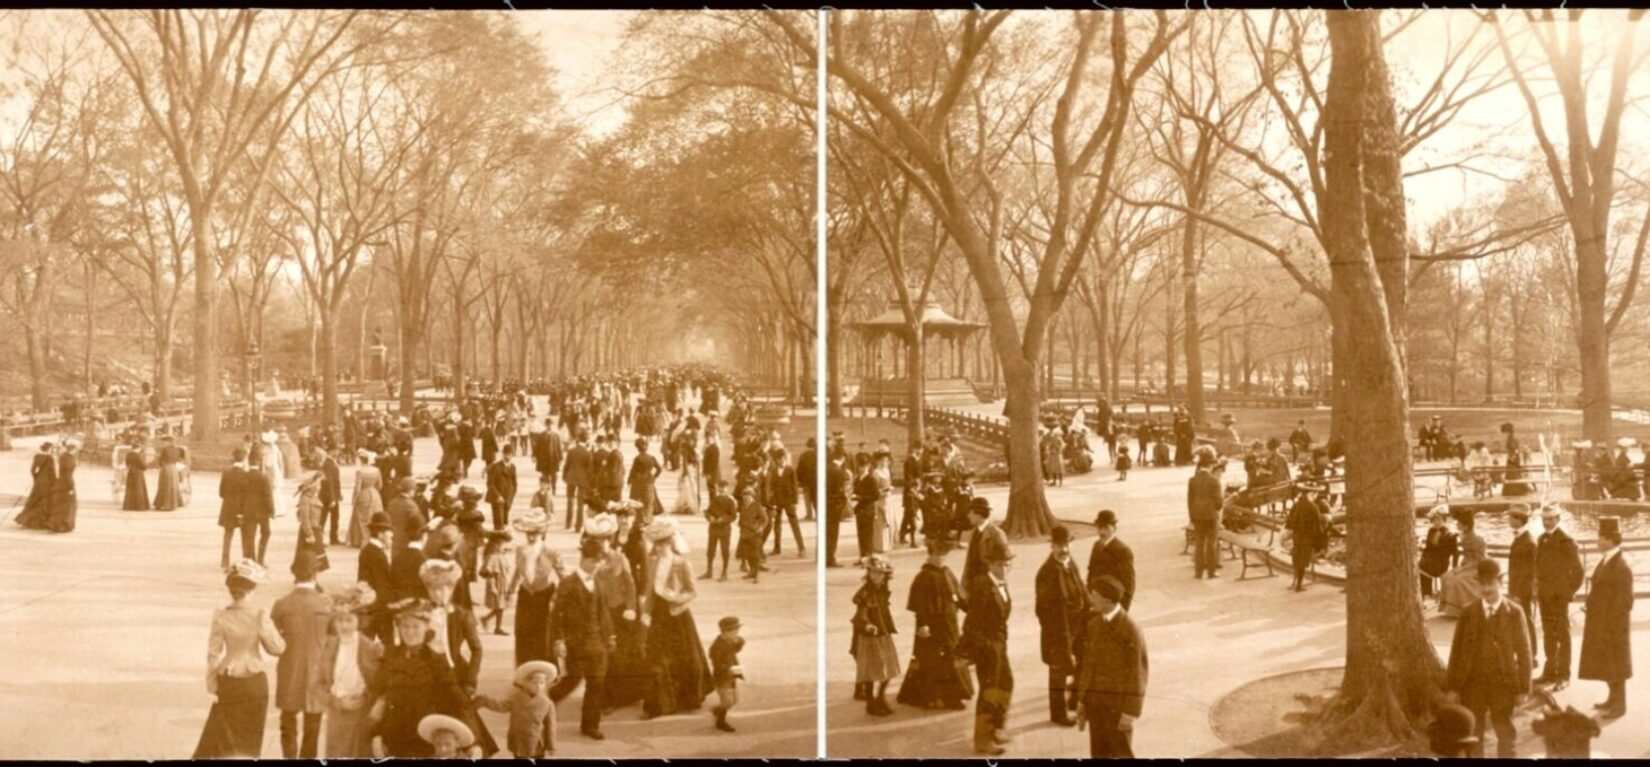 A view of the Mall, crowded with visitors, photographed in 1902.